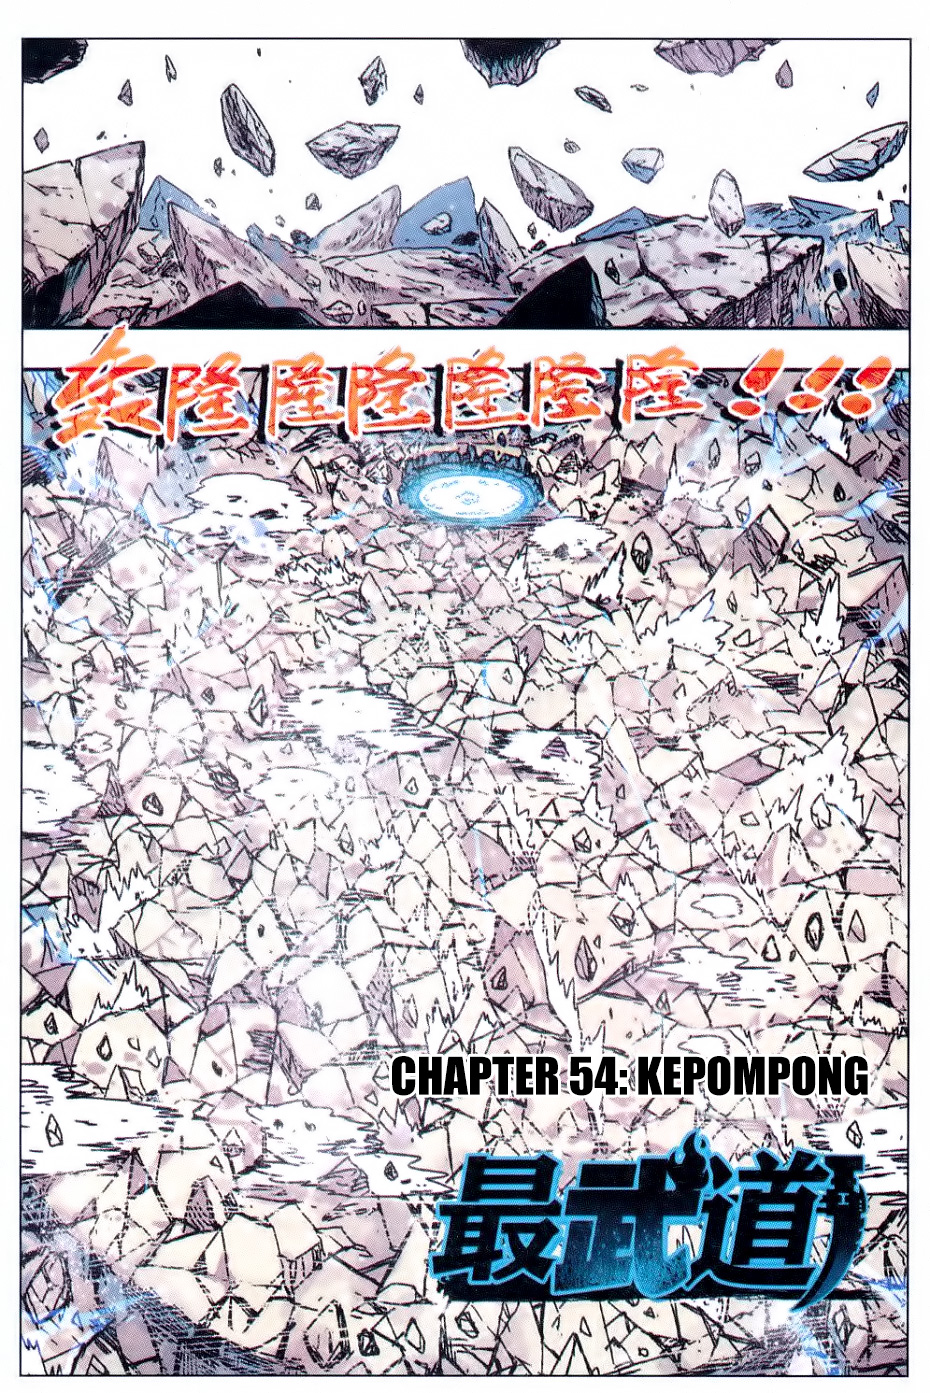 Baca Komik Zui Wu Dao Chapter 54 Komik Station